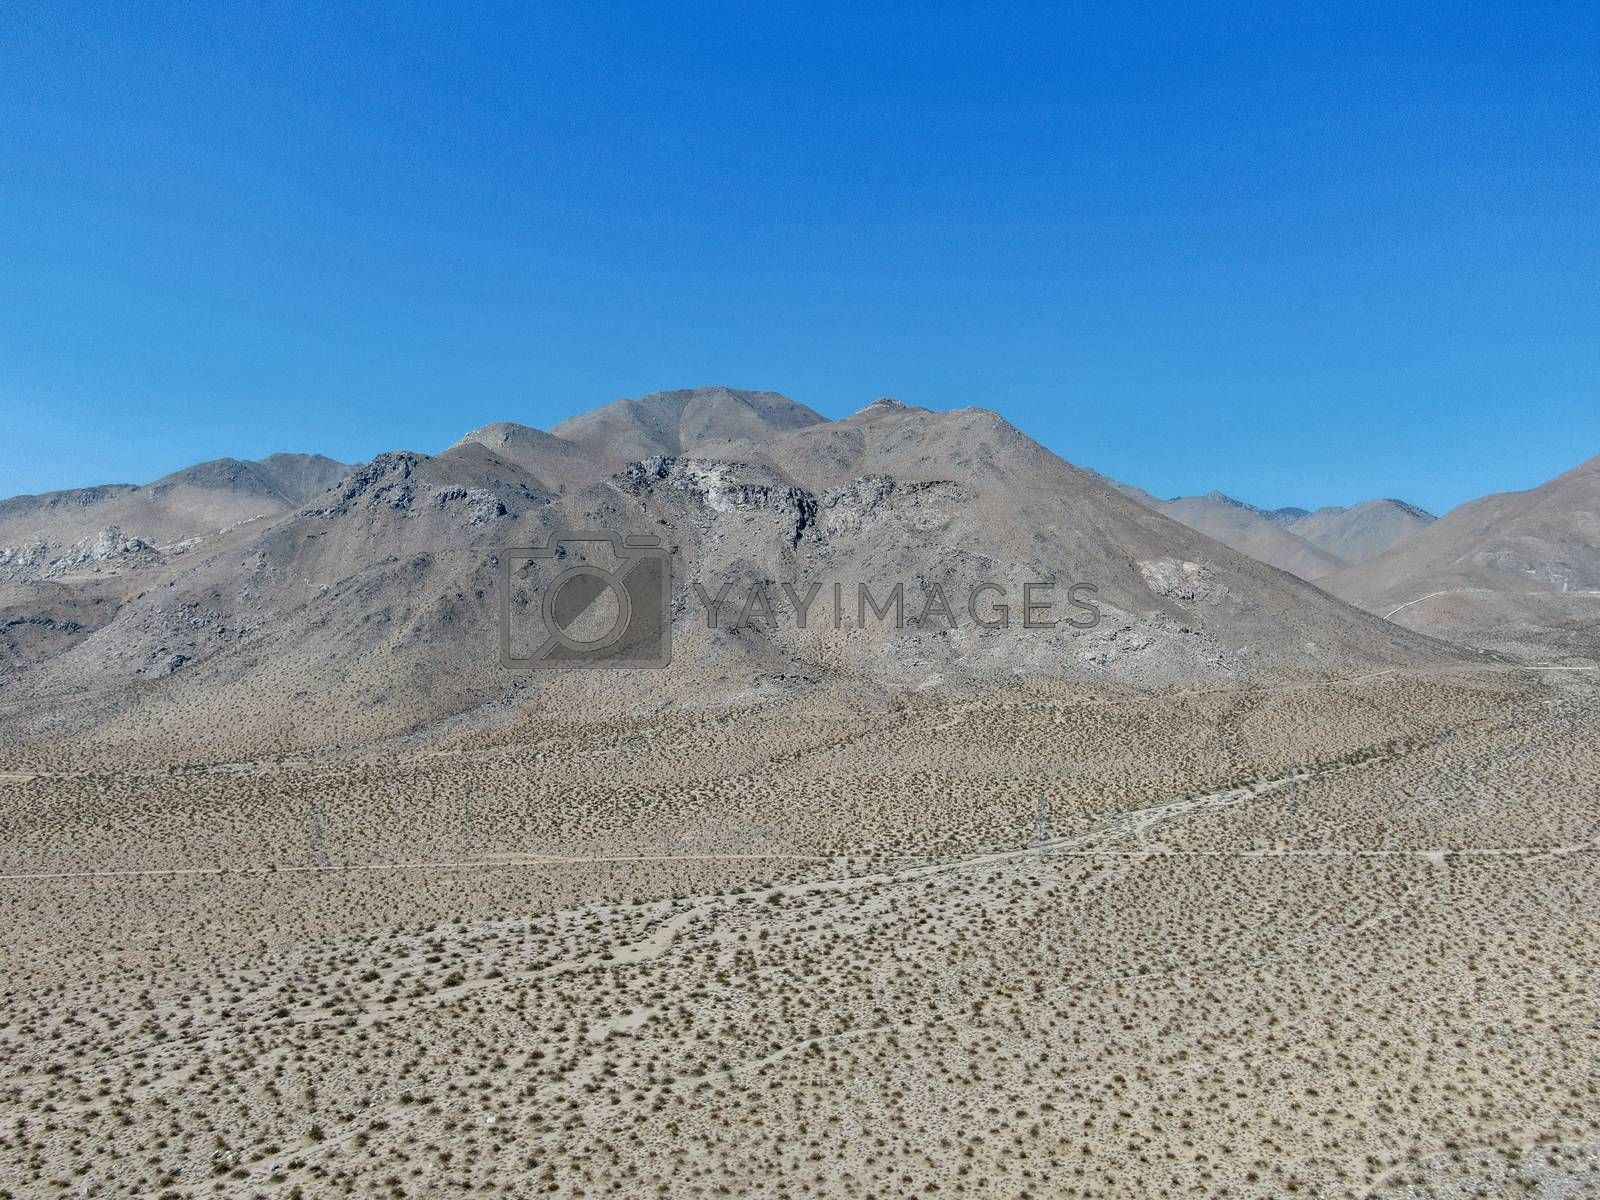 Aerial view of desert hills under blue sky in California's Mojave desert, near Ridgecrest.  by Bonandbon